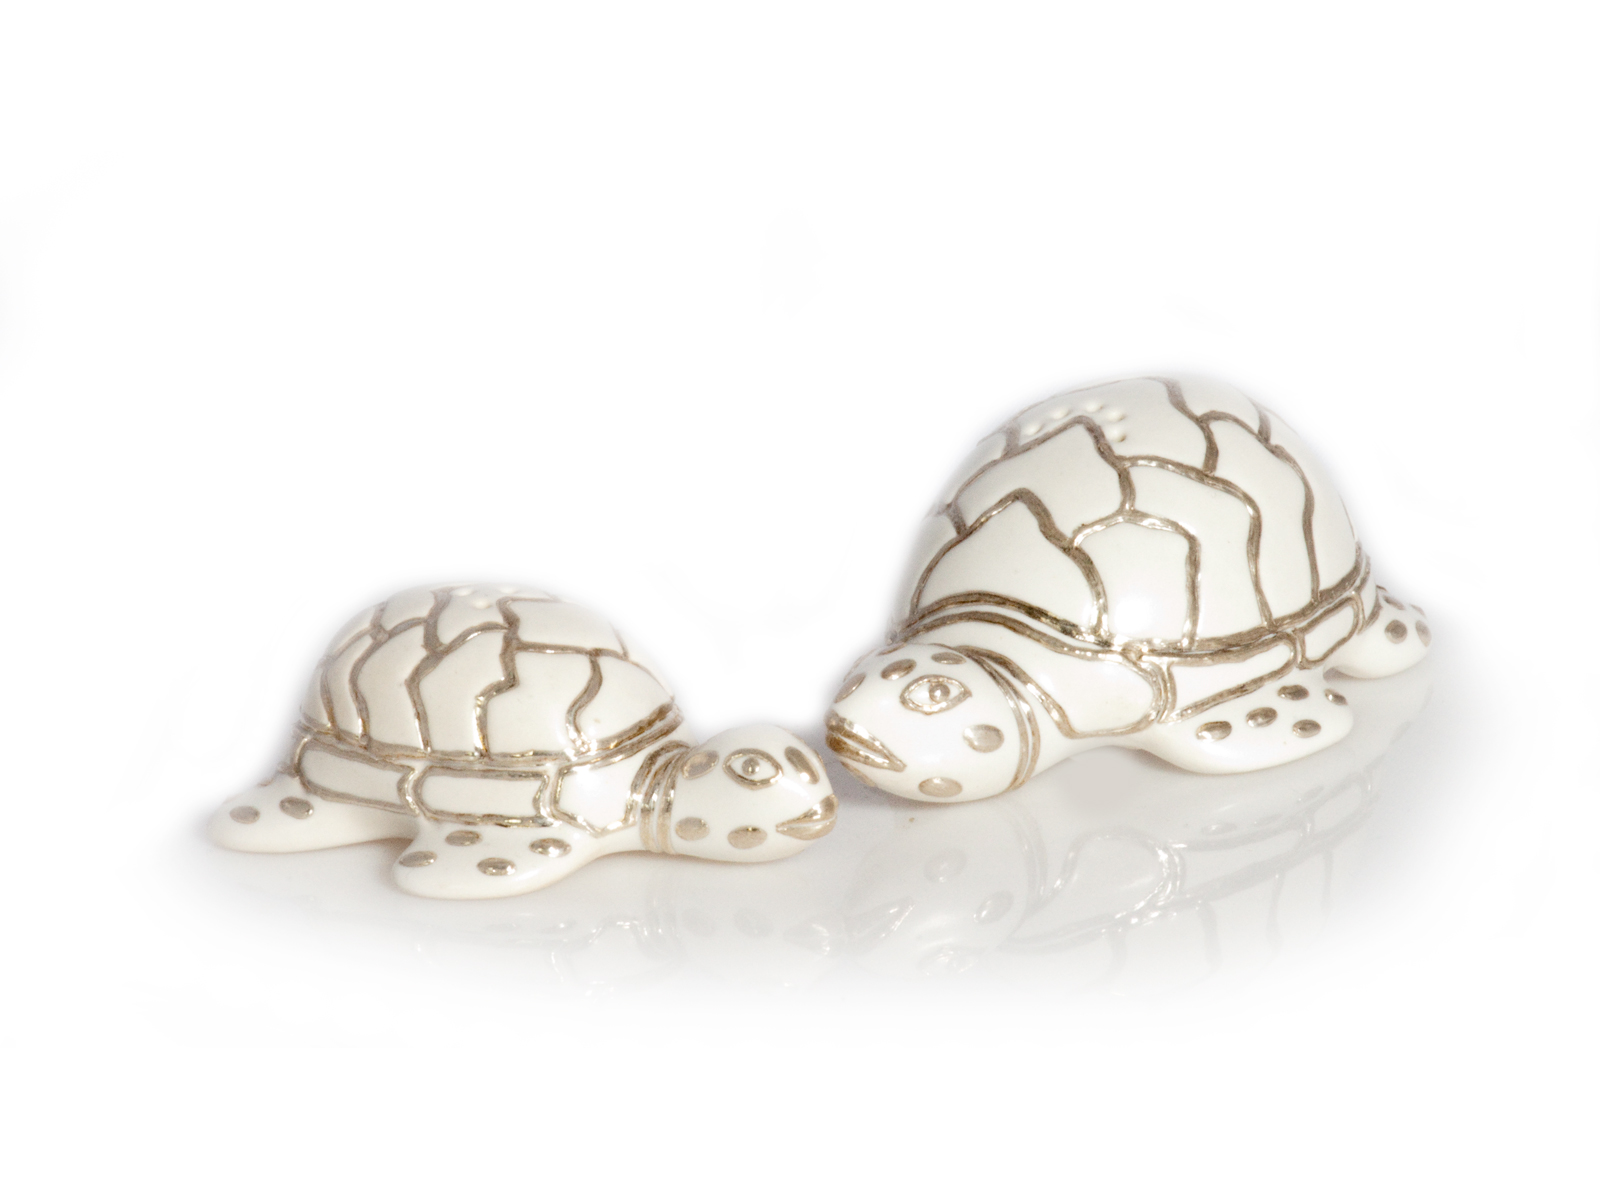 White Turtle Salt Pepper Shakers